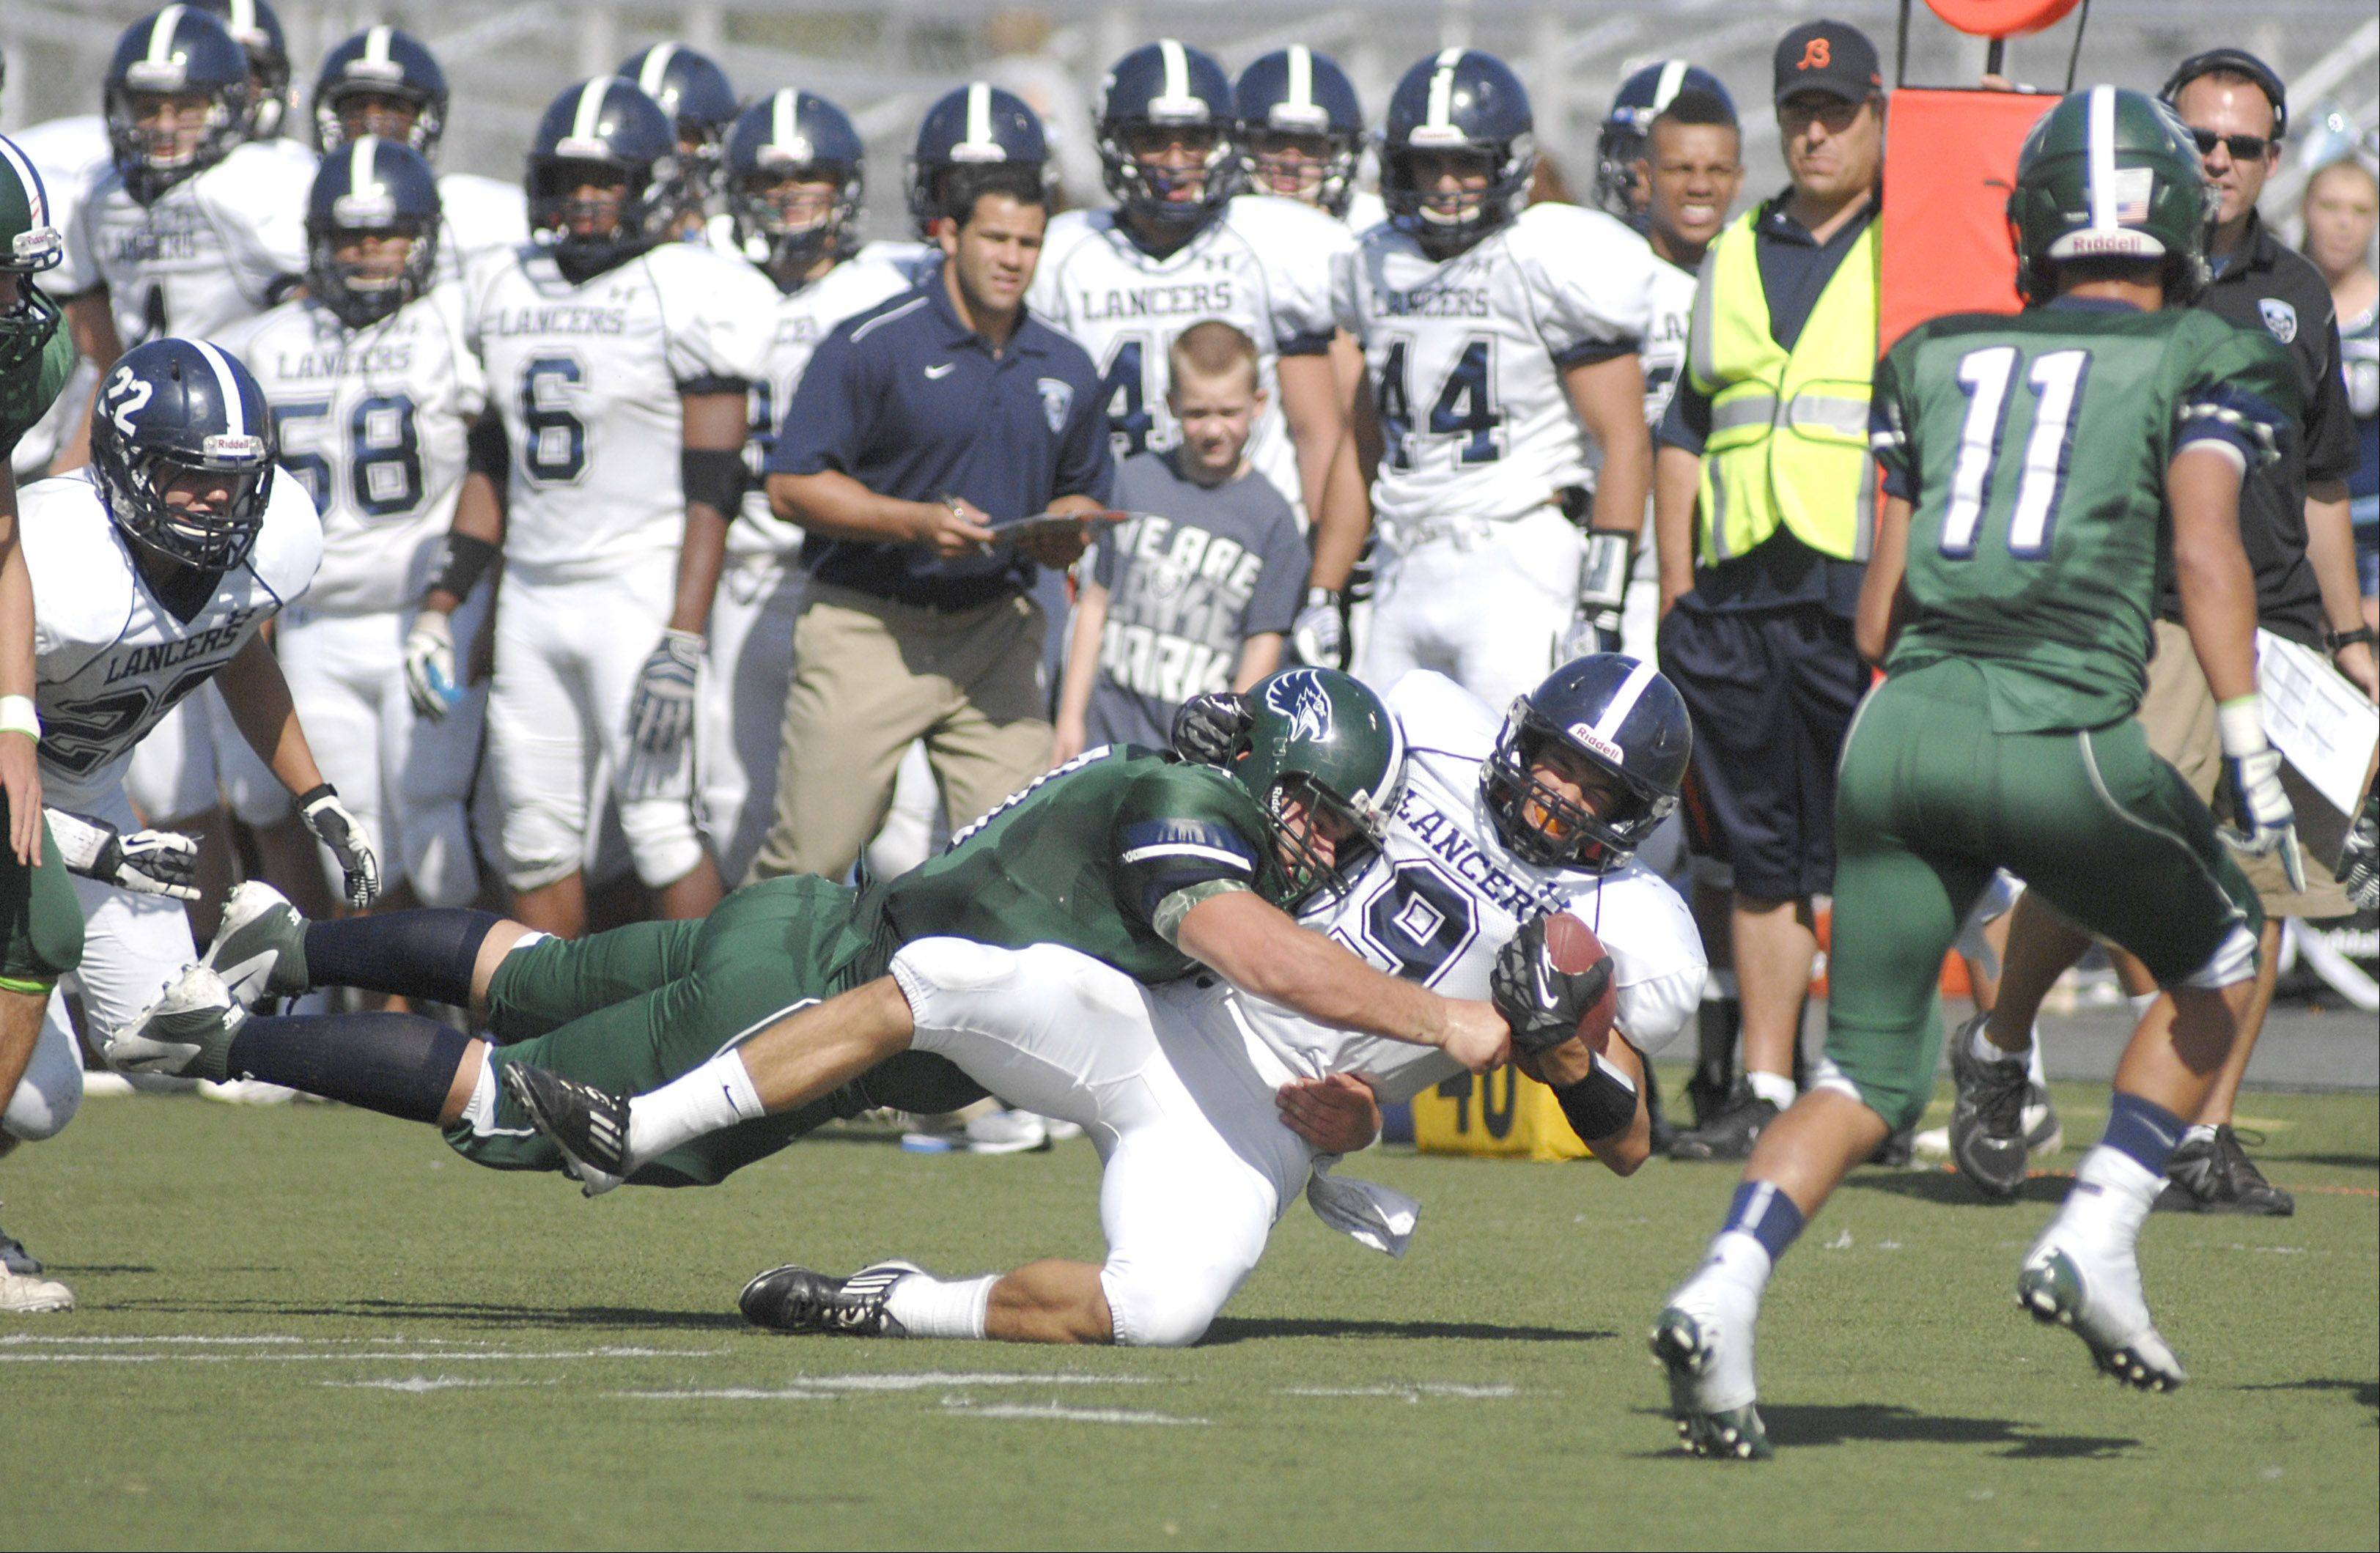 Bartlett's Kevin Kirchhoff tackles Lake Park's Scott Filip in the first quarter on Saturday, September 30.